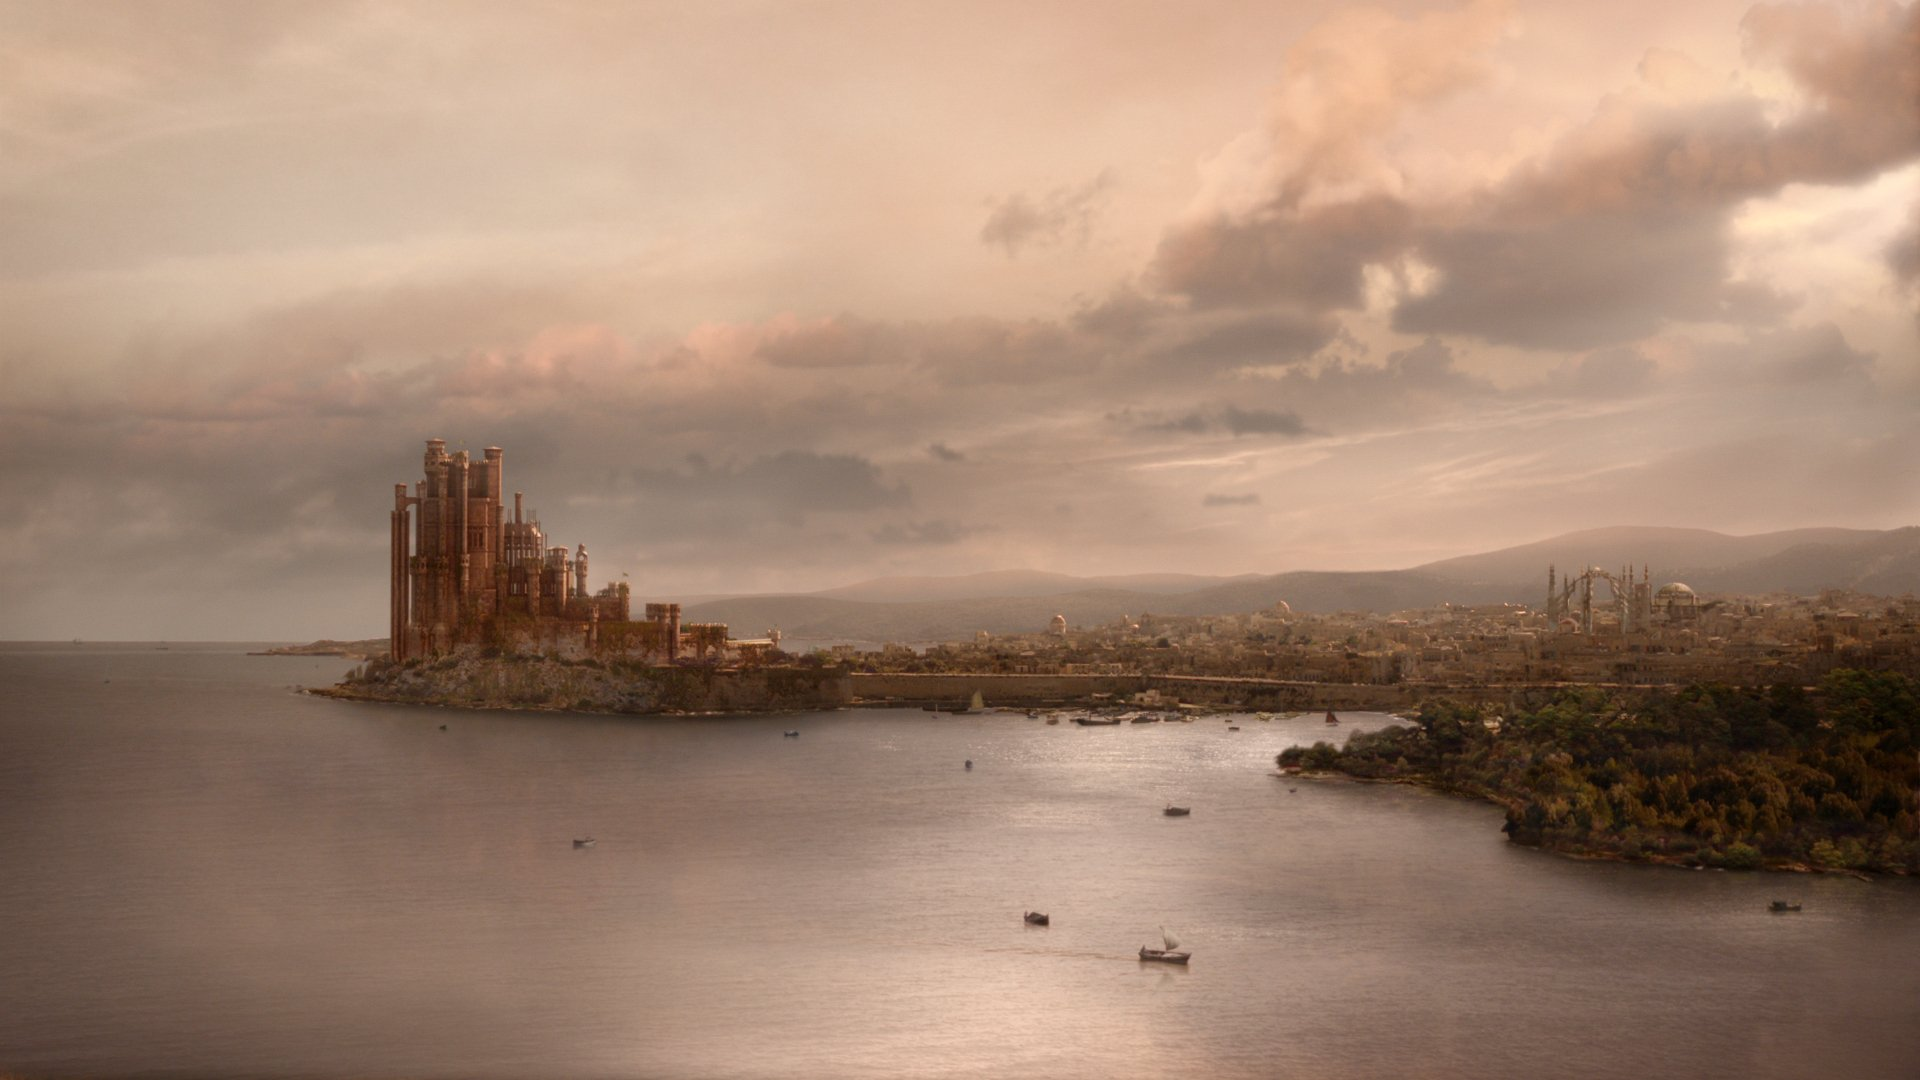 hd wallpaper background id220983 1920x1080 tv show game of thrones